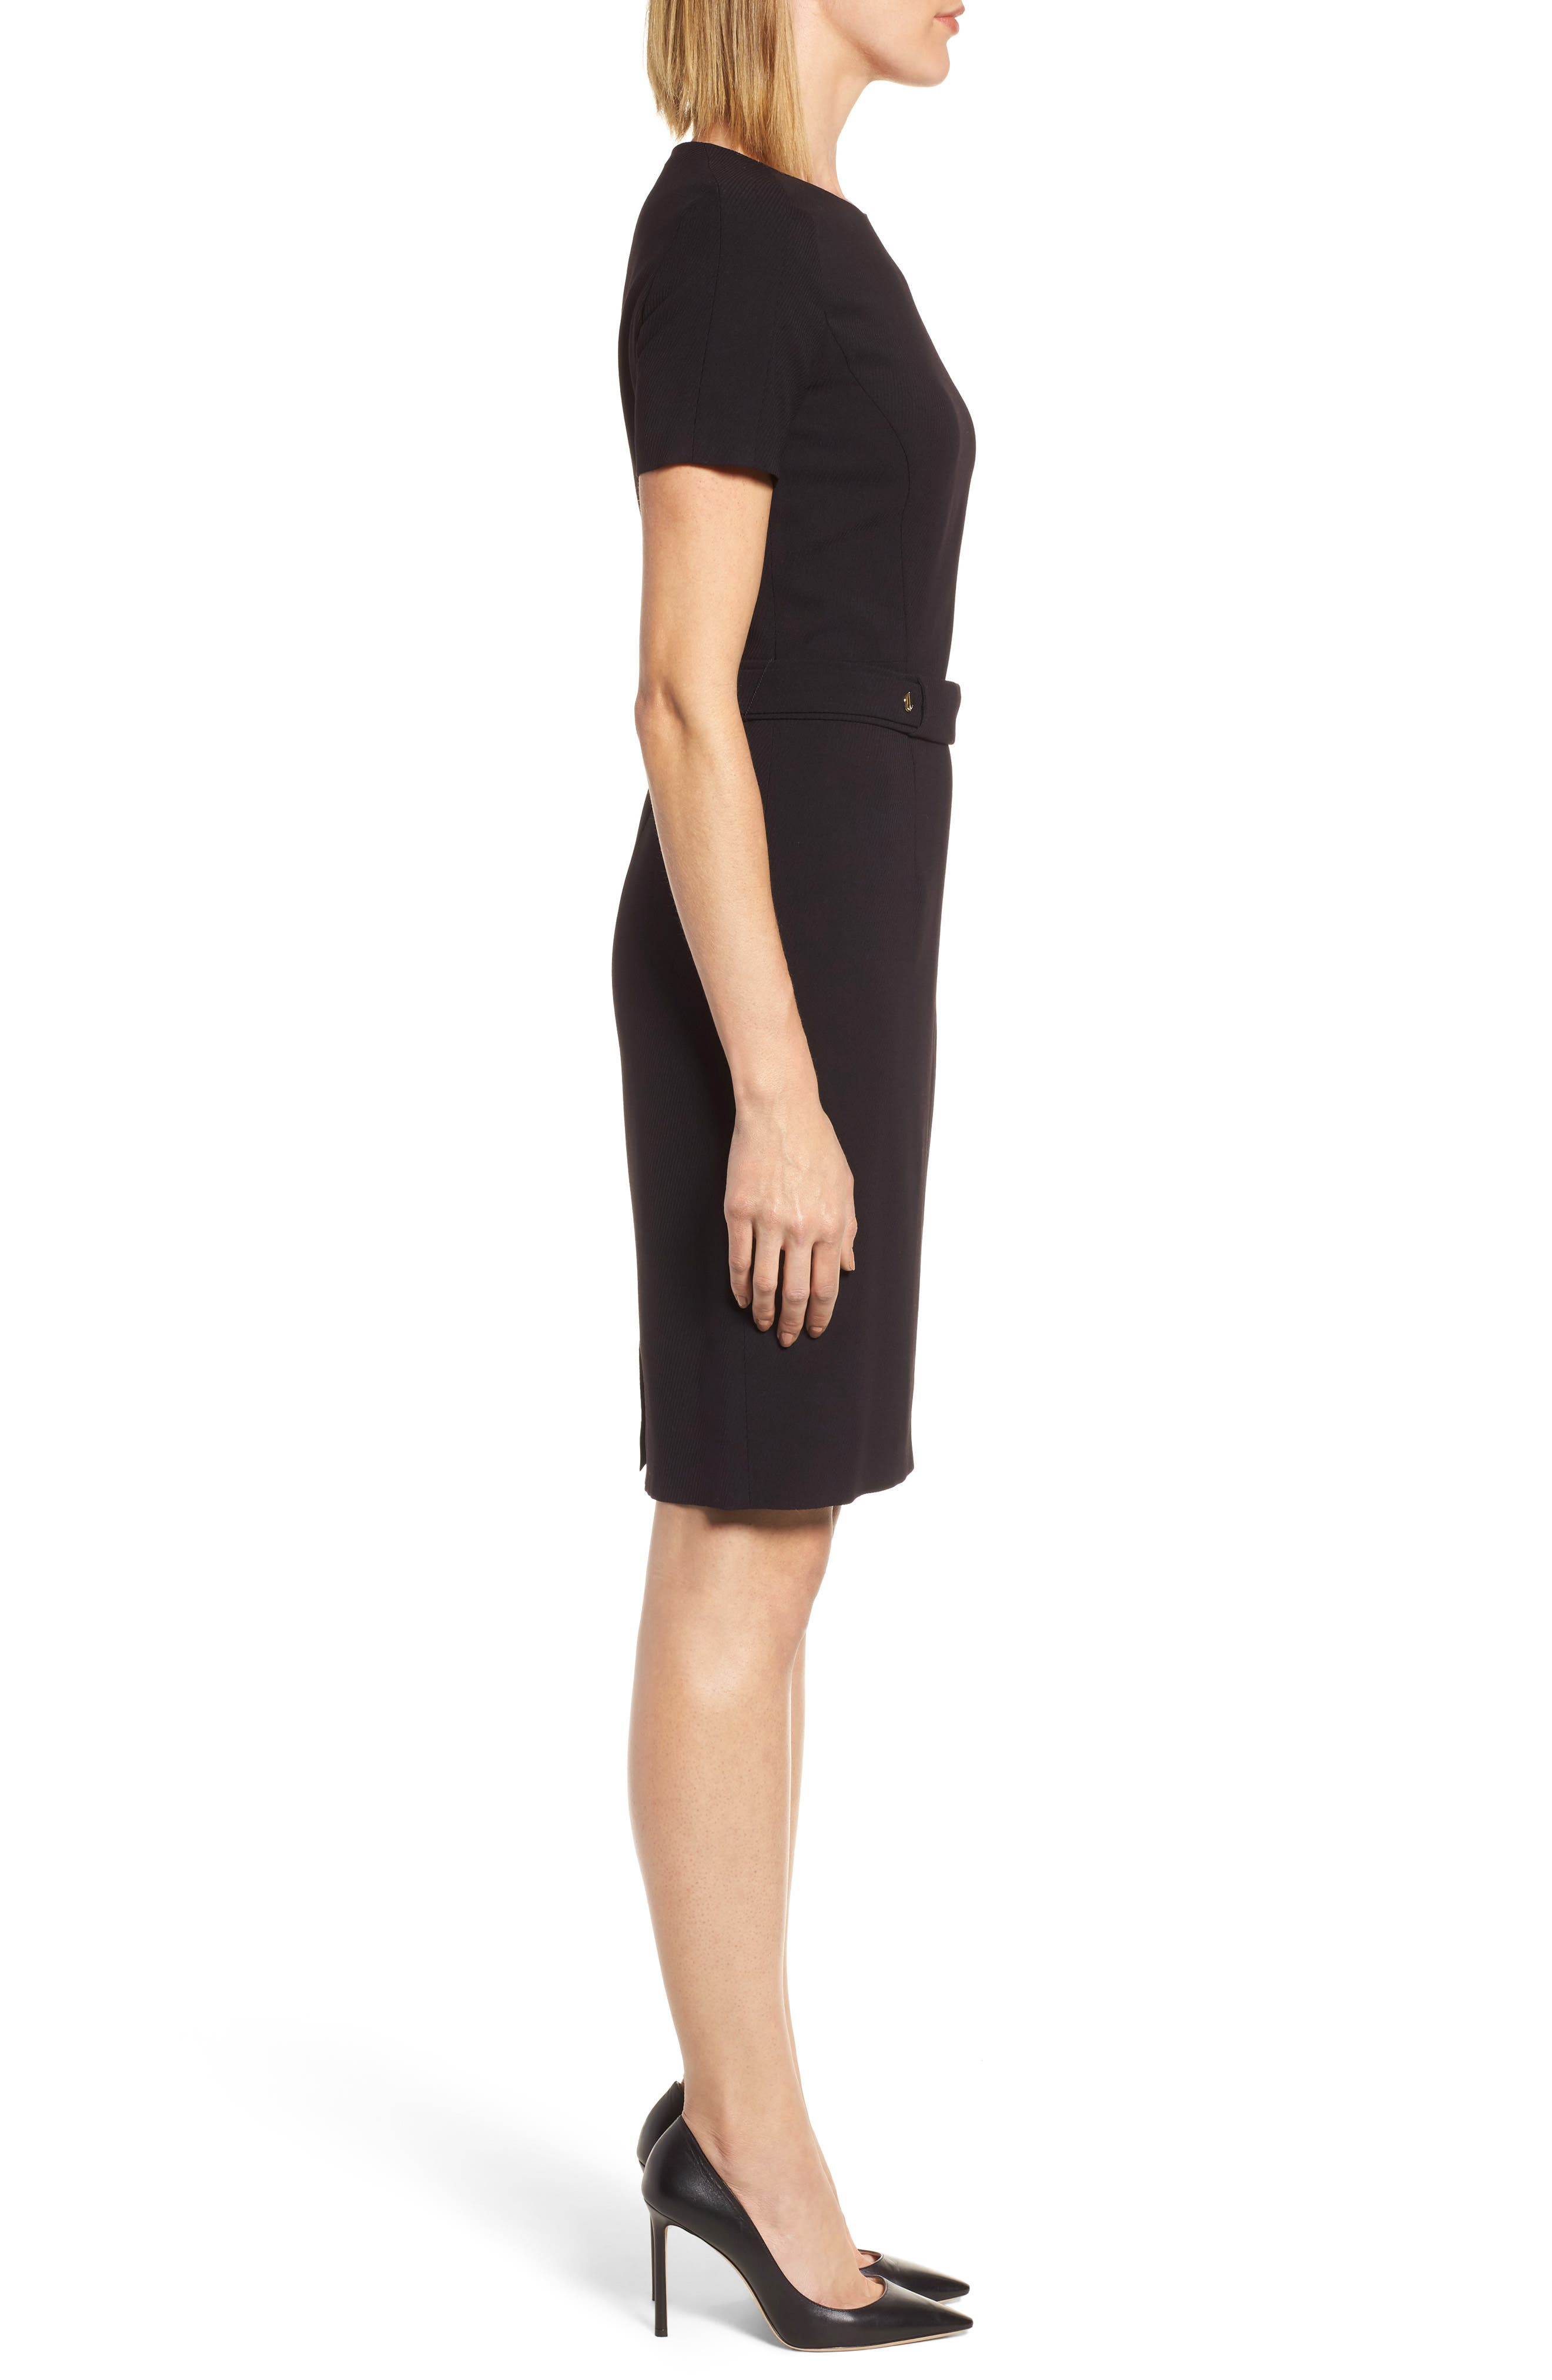 Desulea Stretch Wool Sheath Dress,                             Alternate thumbnail 3, color,                             Black